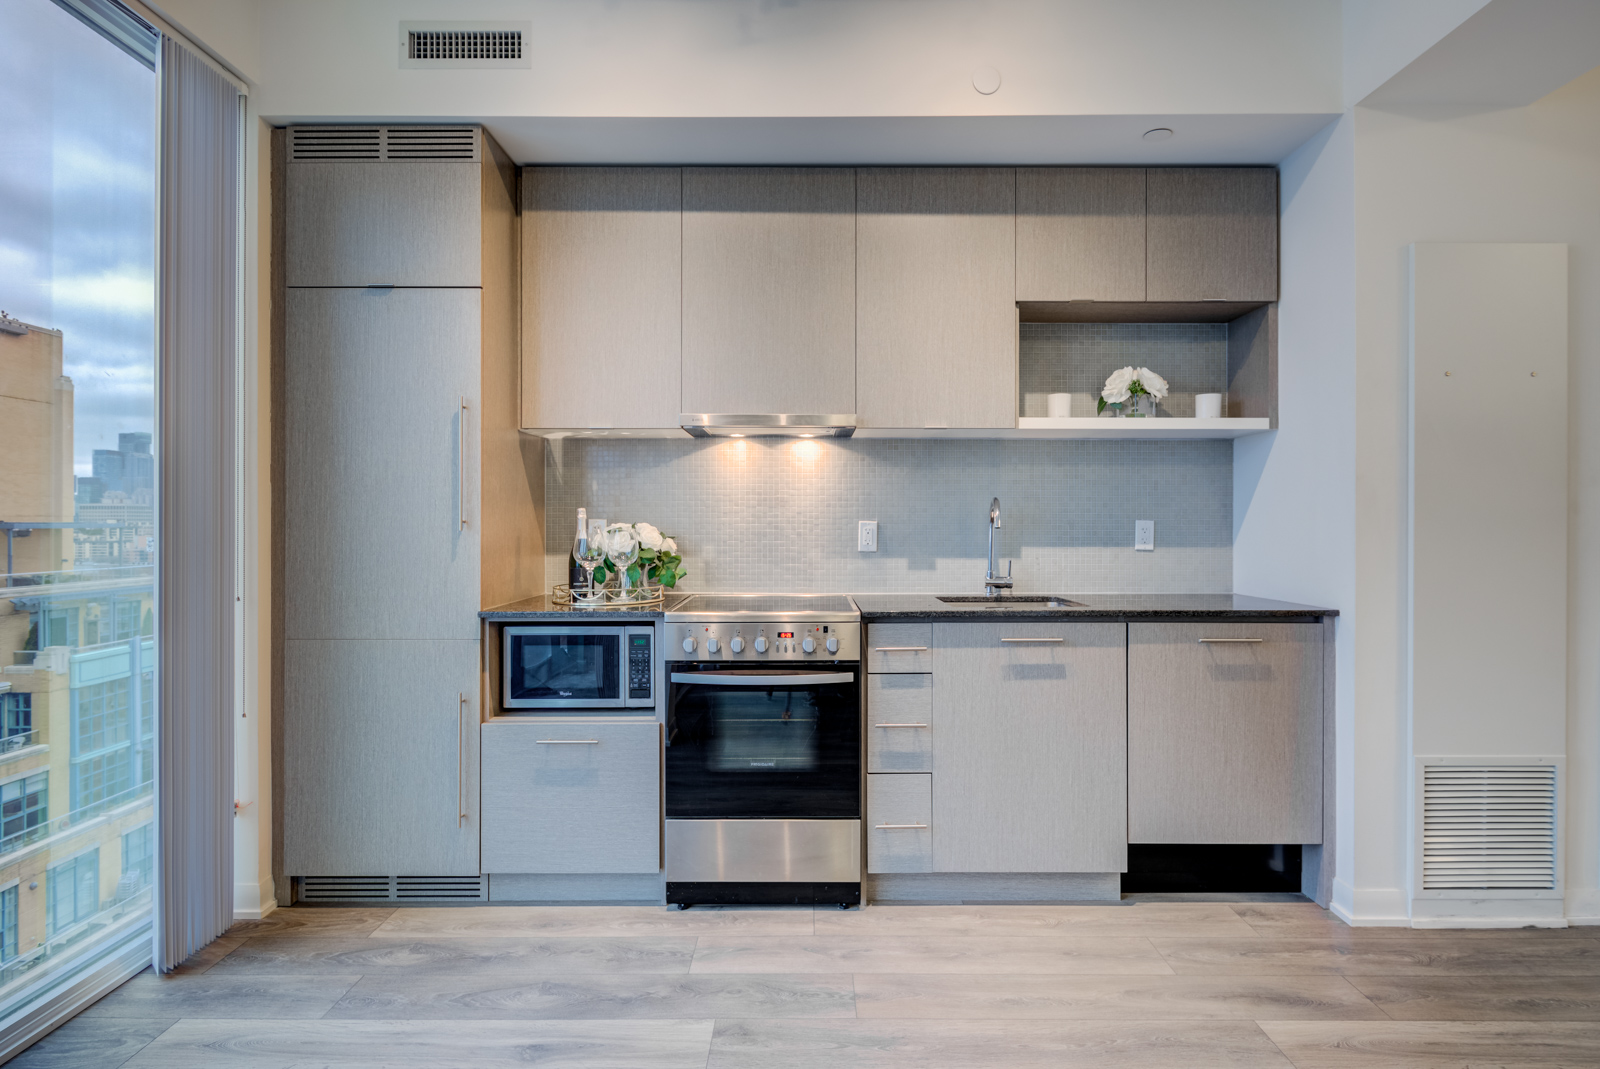 Linear kitchen with stainless-steel stove, cooktop and microwave.